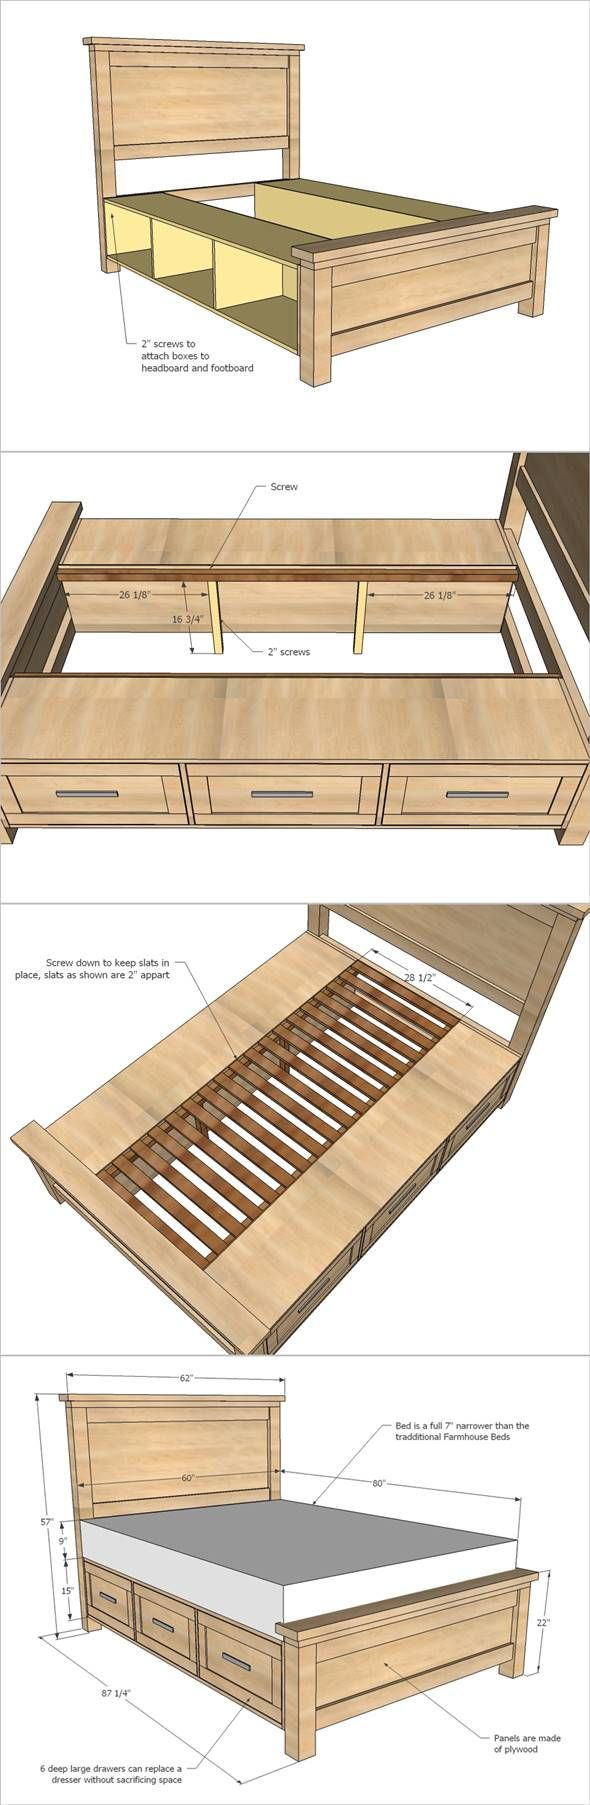 Bed frame designs with storage - Creative Ideas How To Build A Farmhouse Storage Bed With Drawers